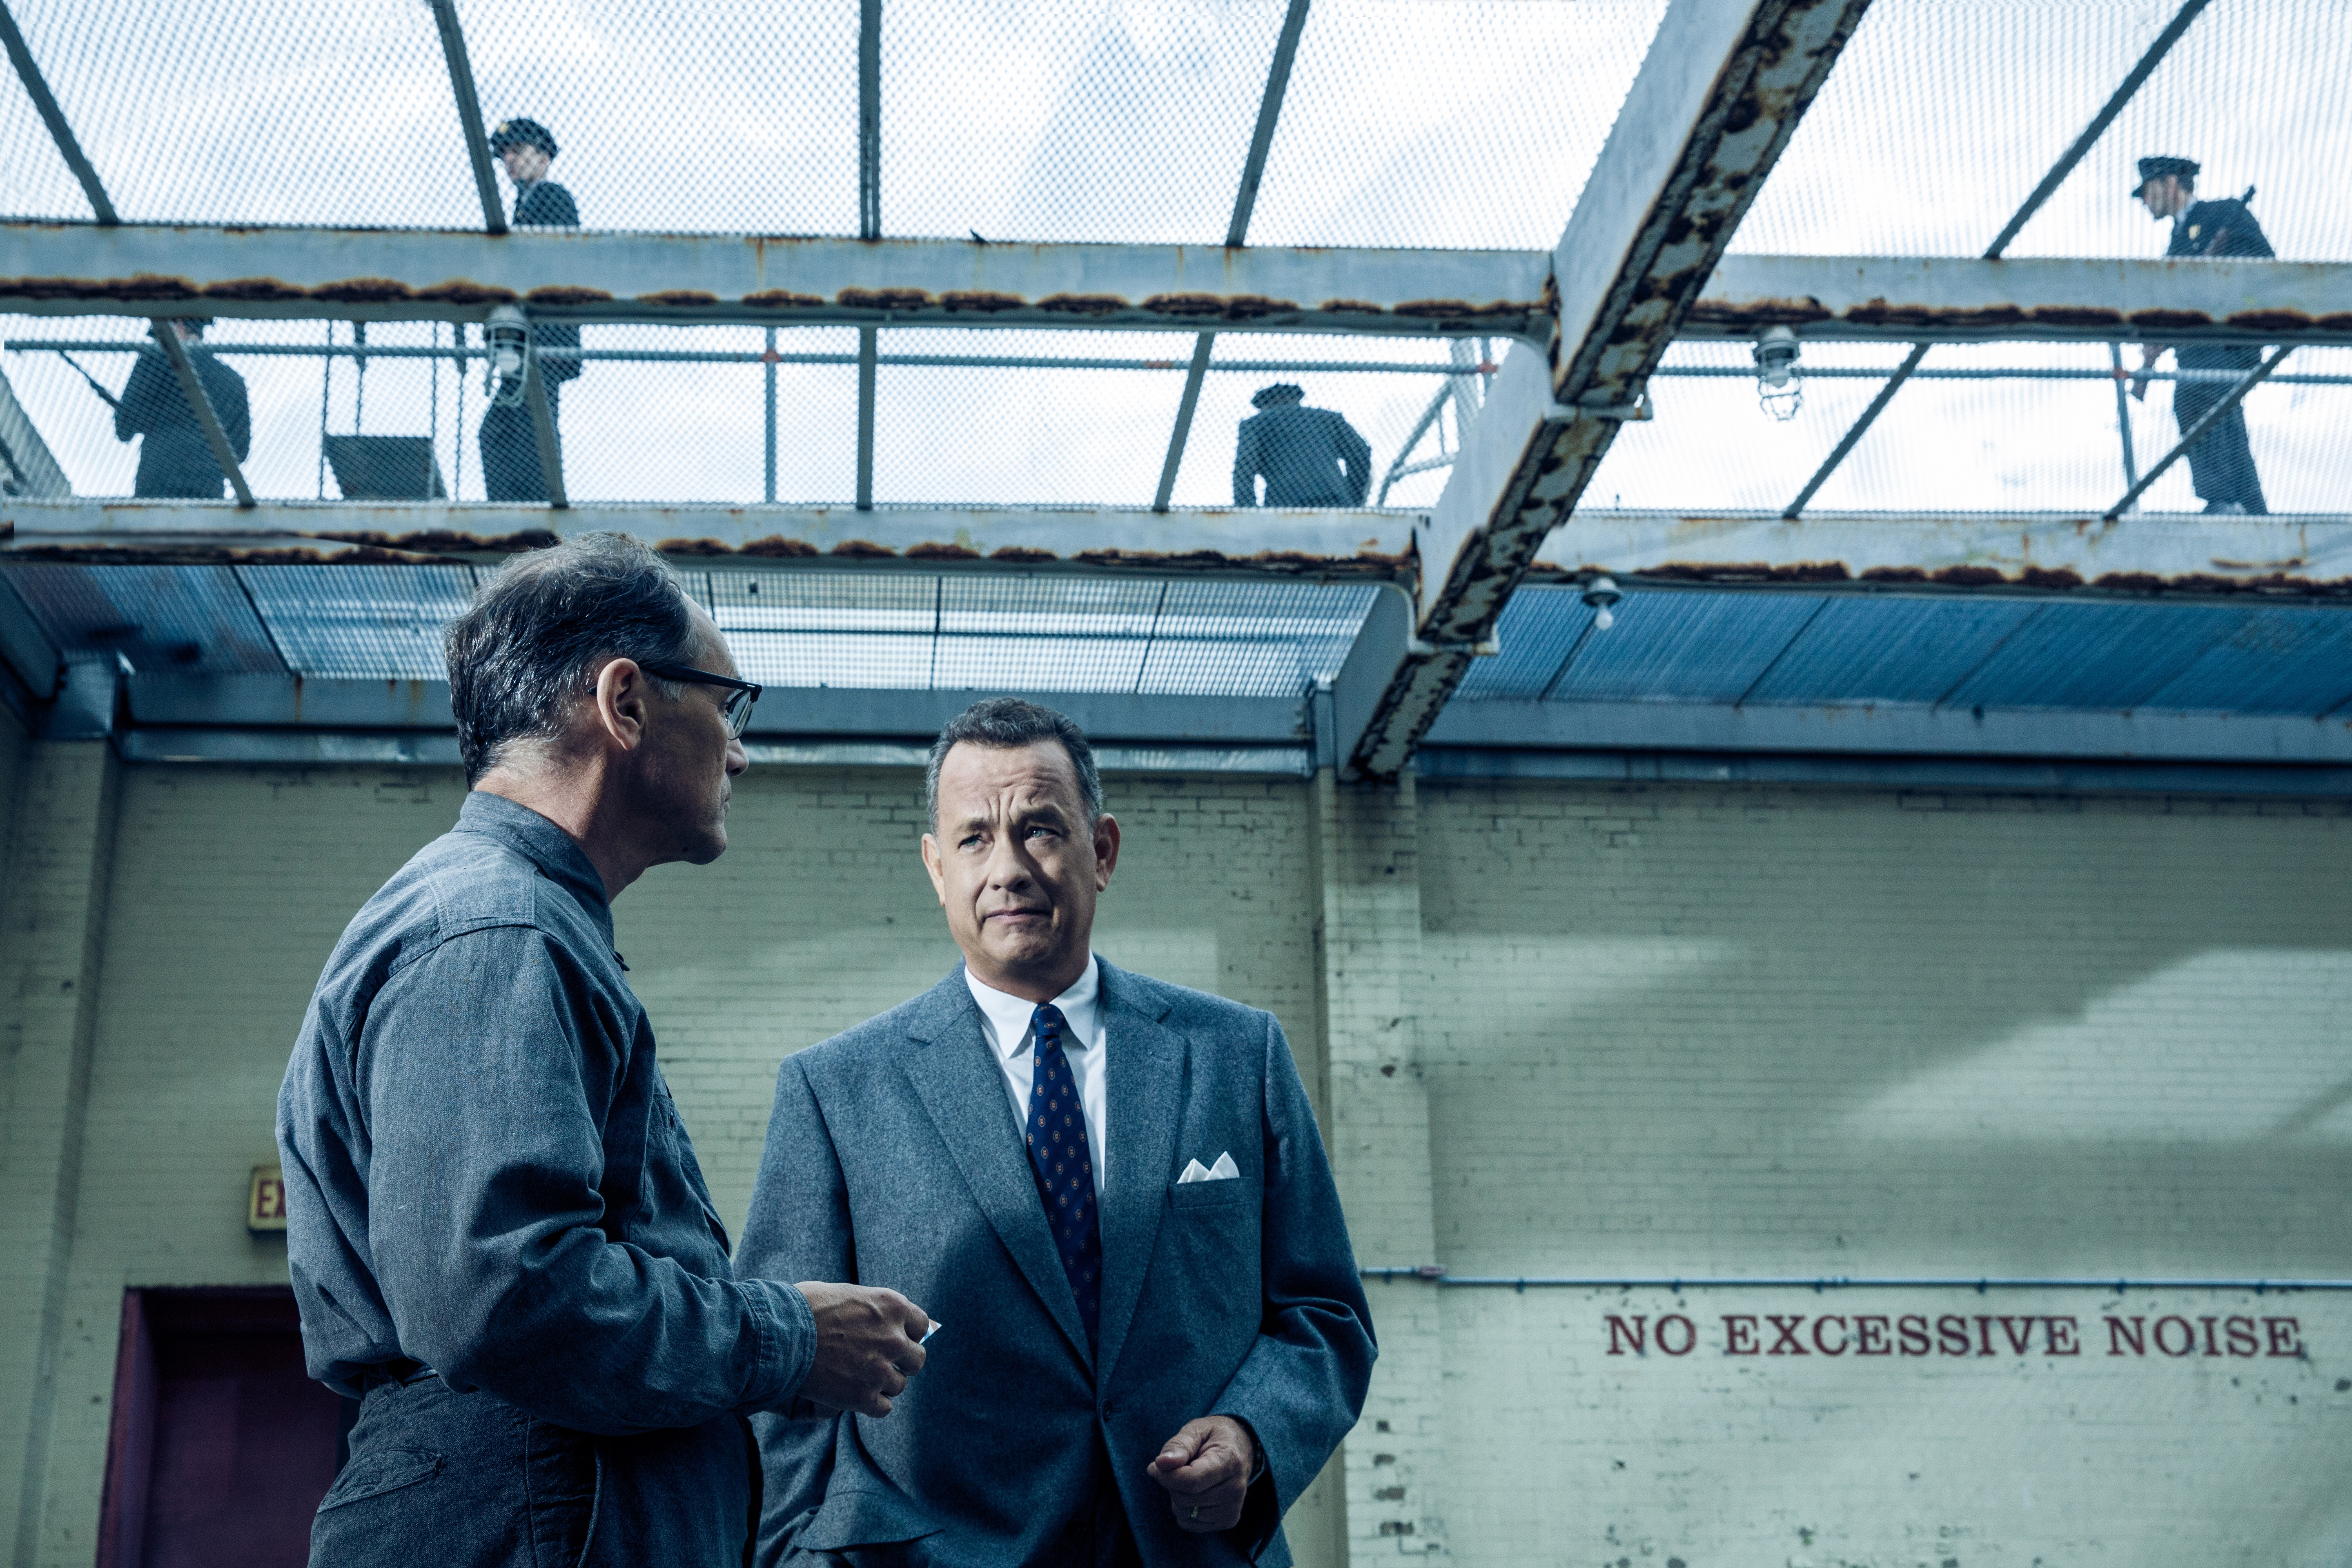 Tom Hanks is Brooklyn lawyer James Donovan and Mark Rylance is Soviet agent Rudolf Abel in the dramatic thriller BRIDGE OF SPIES, directed by Steven Spielberg.